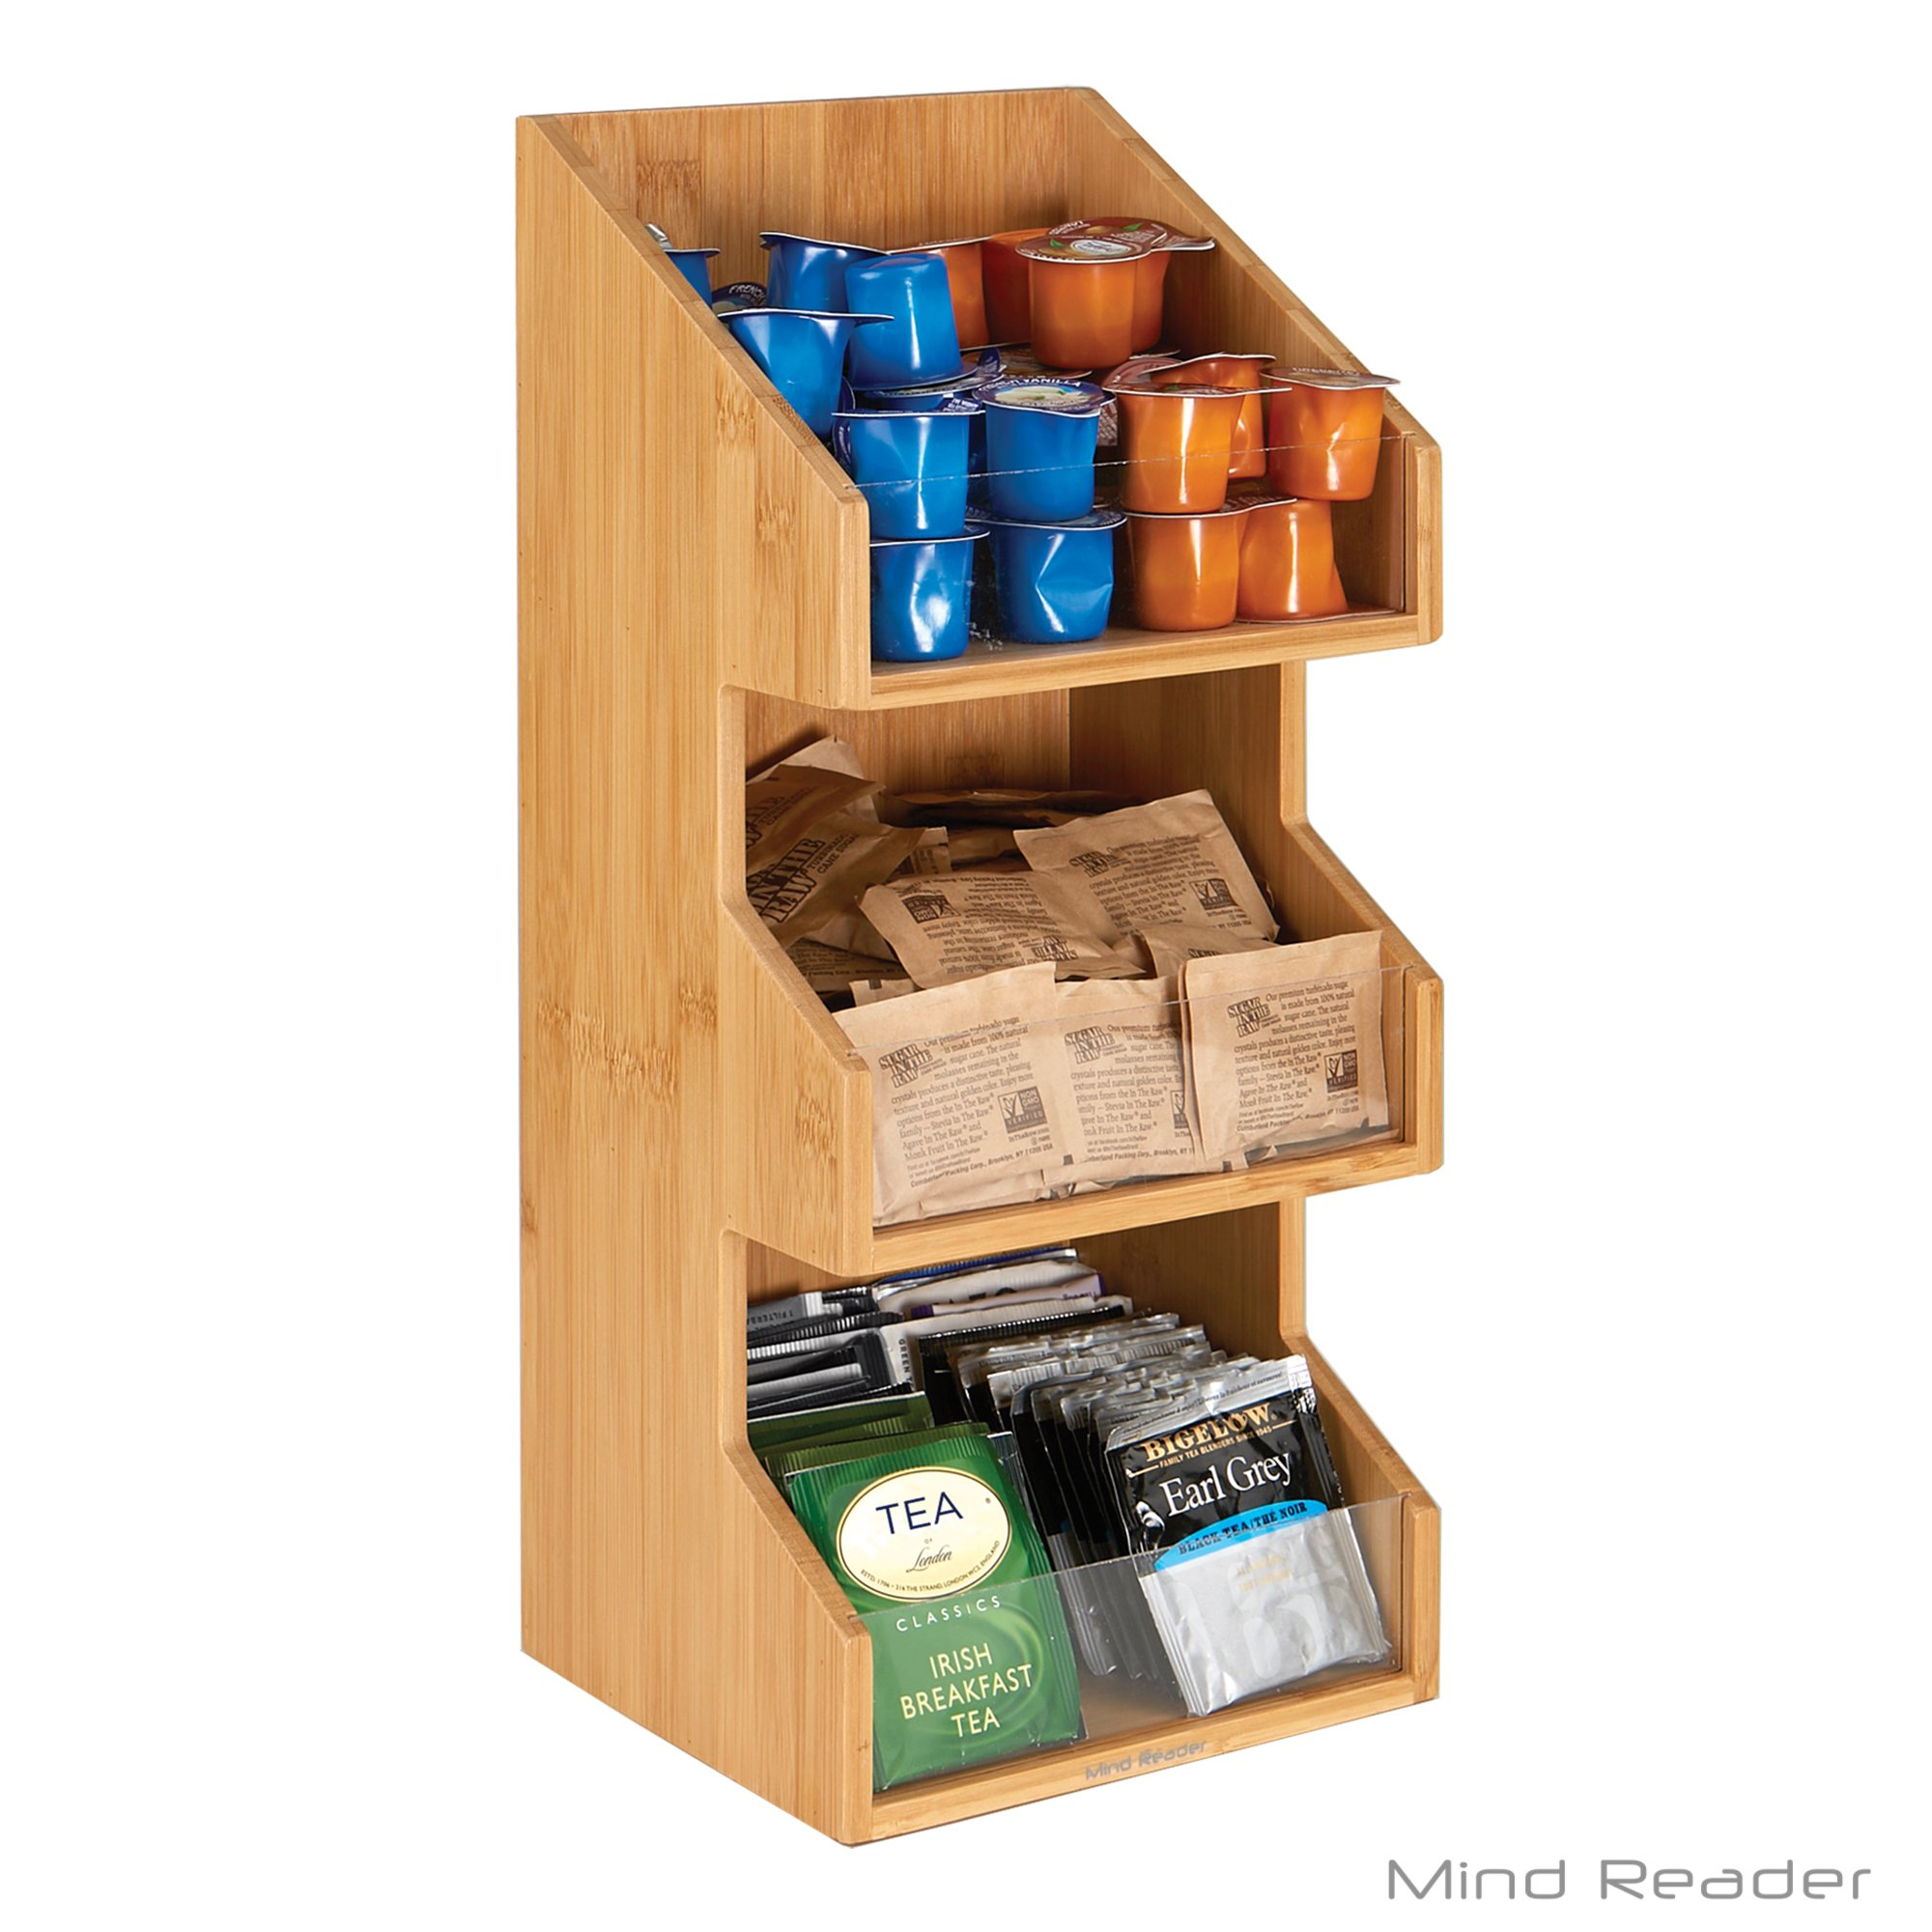 Mind Reader Coffee Condiment and Accessories Caddy Organizer, Bamboo Brown by Mind Reader